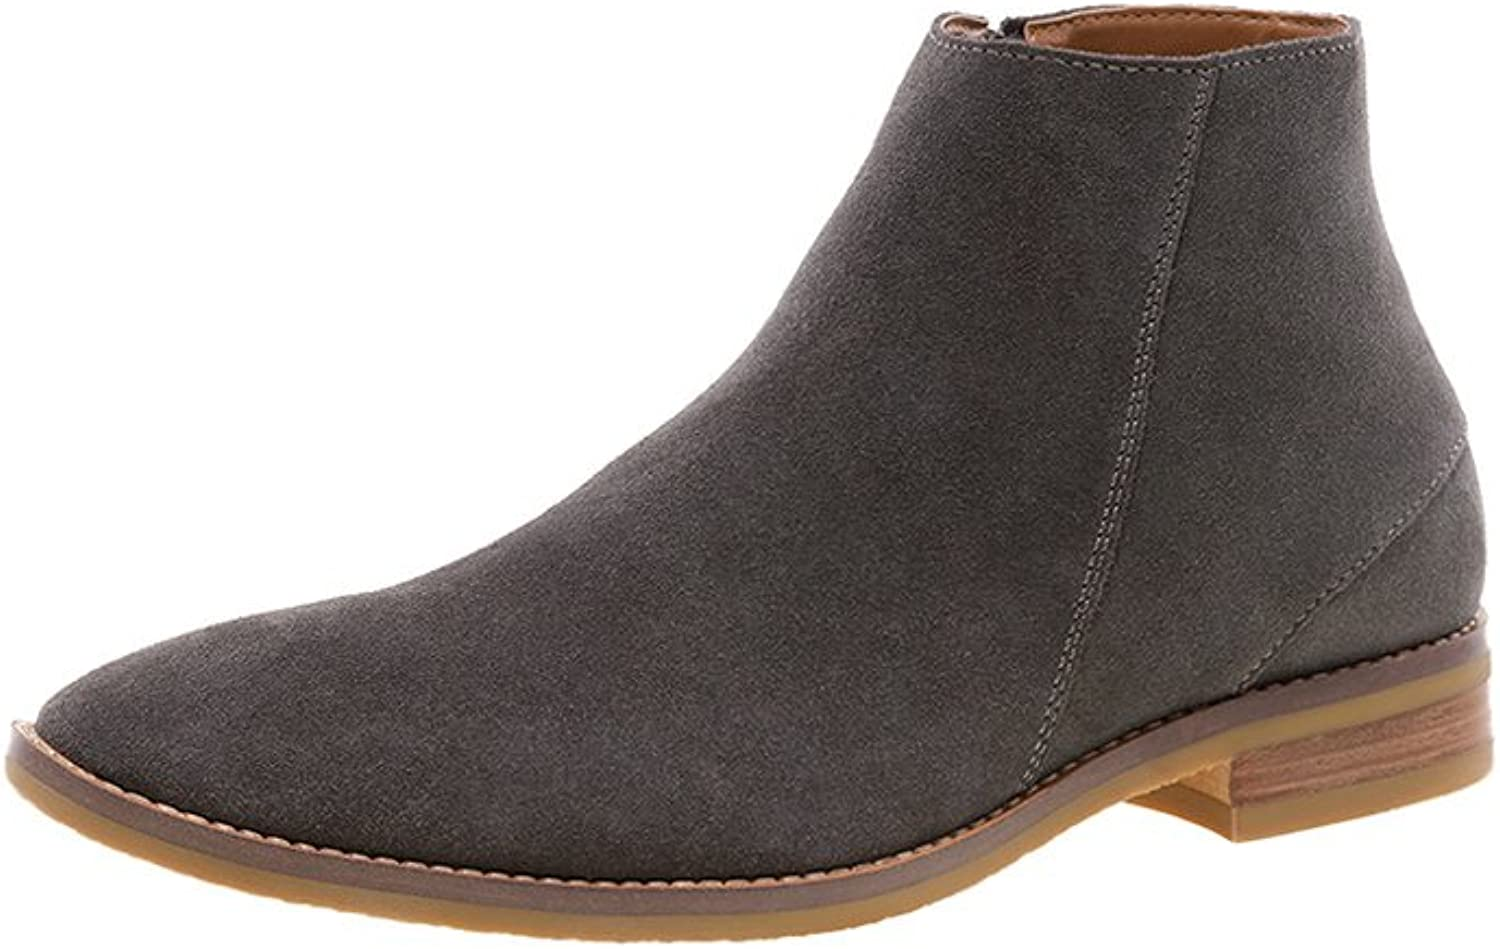 JUMP NEWYORK Men's Brighton Inside Zip Beatle Boot